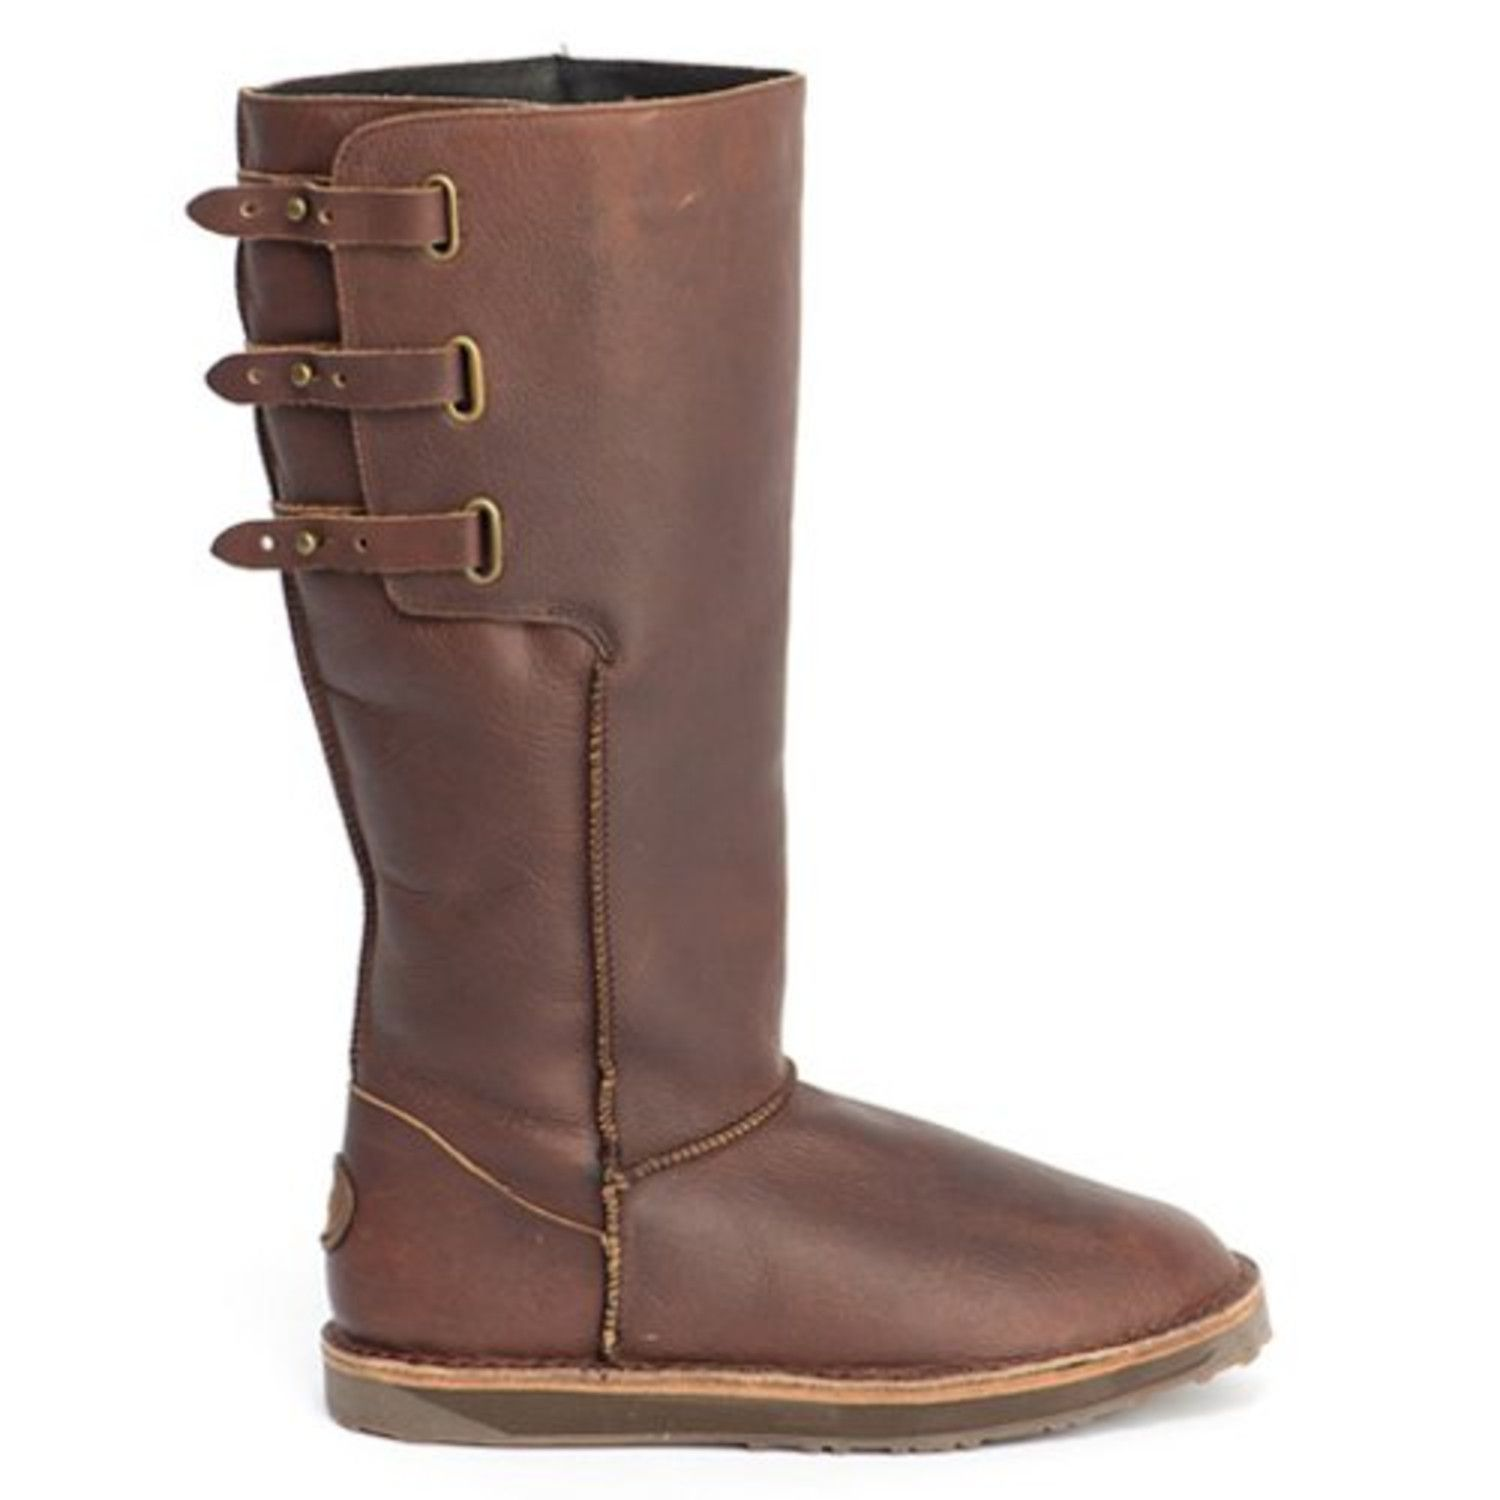 Discount Emu Boots for Women | Emu Chocolate Narooma Leather Boot ...